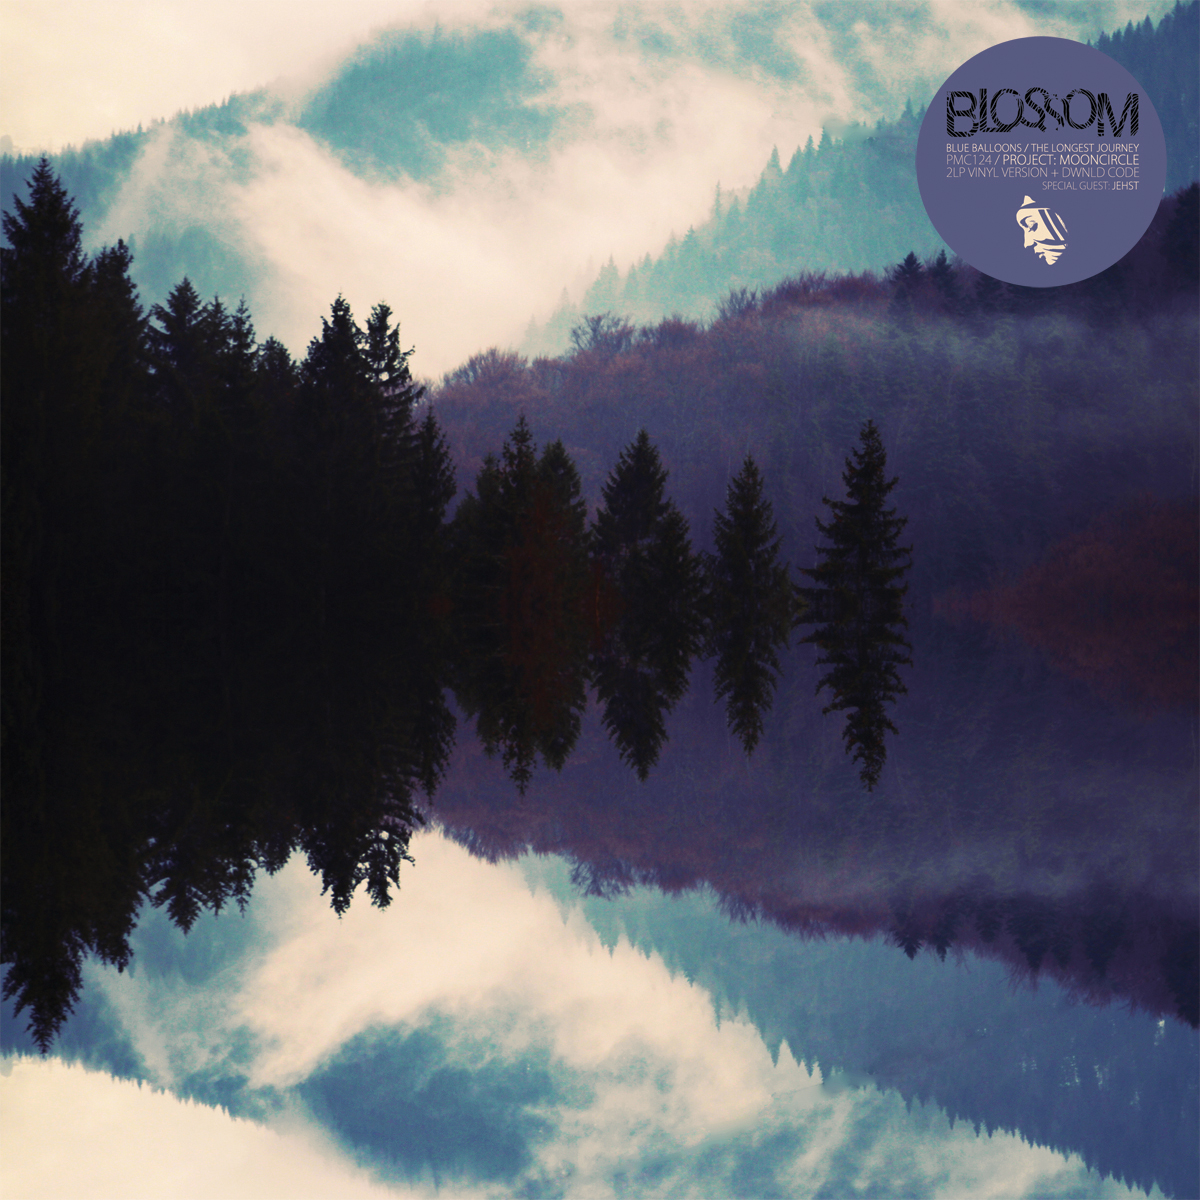 Free MP3: Blossom – Canvas